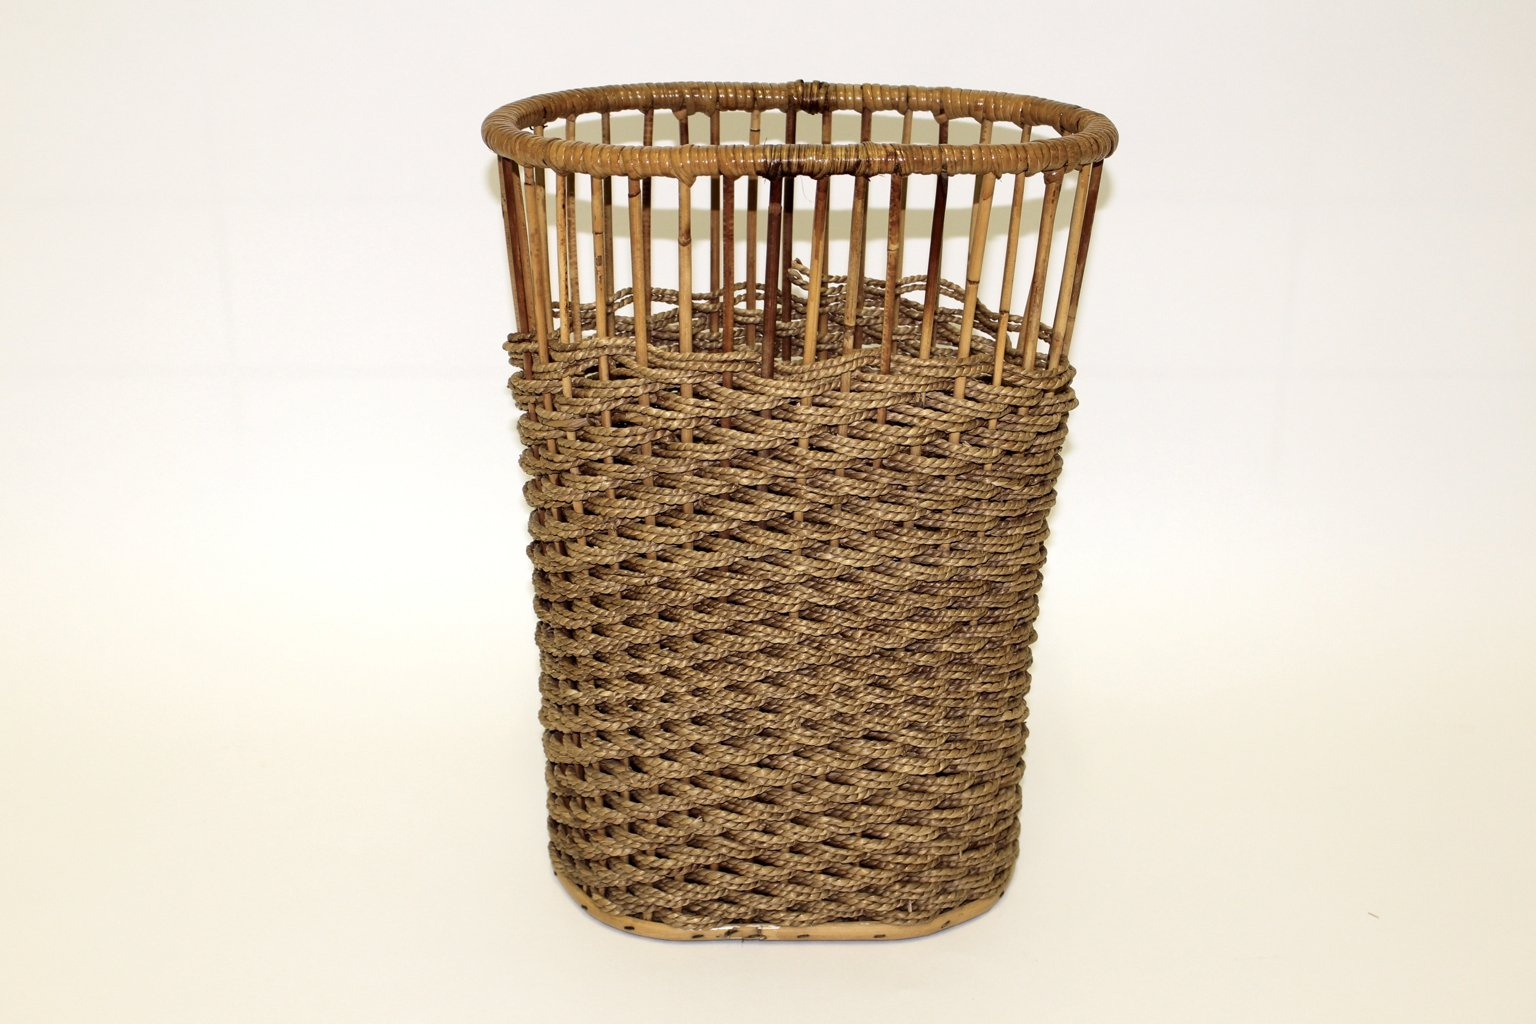 waste paper basket Find great deals for 2 spalding basketball net wastepaper basket hoopster  crunch time 125 dia 5 gal shop with confidence on ebay.